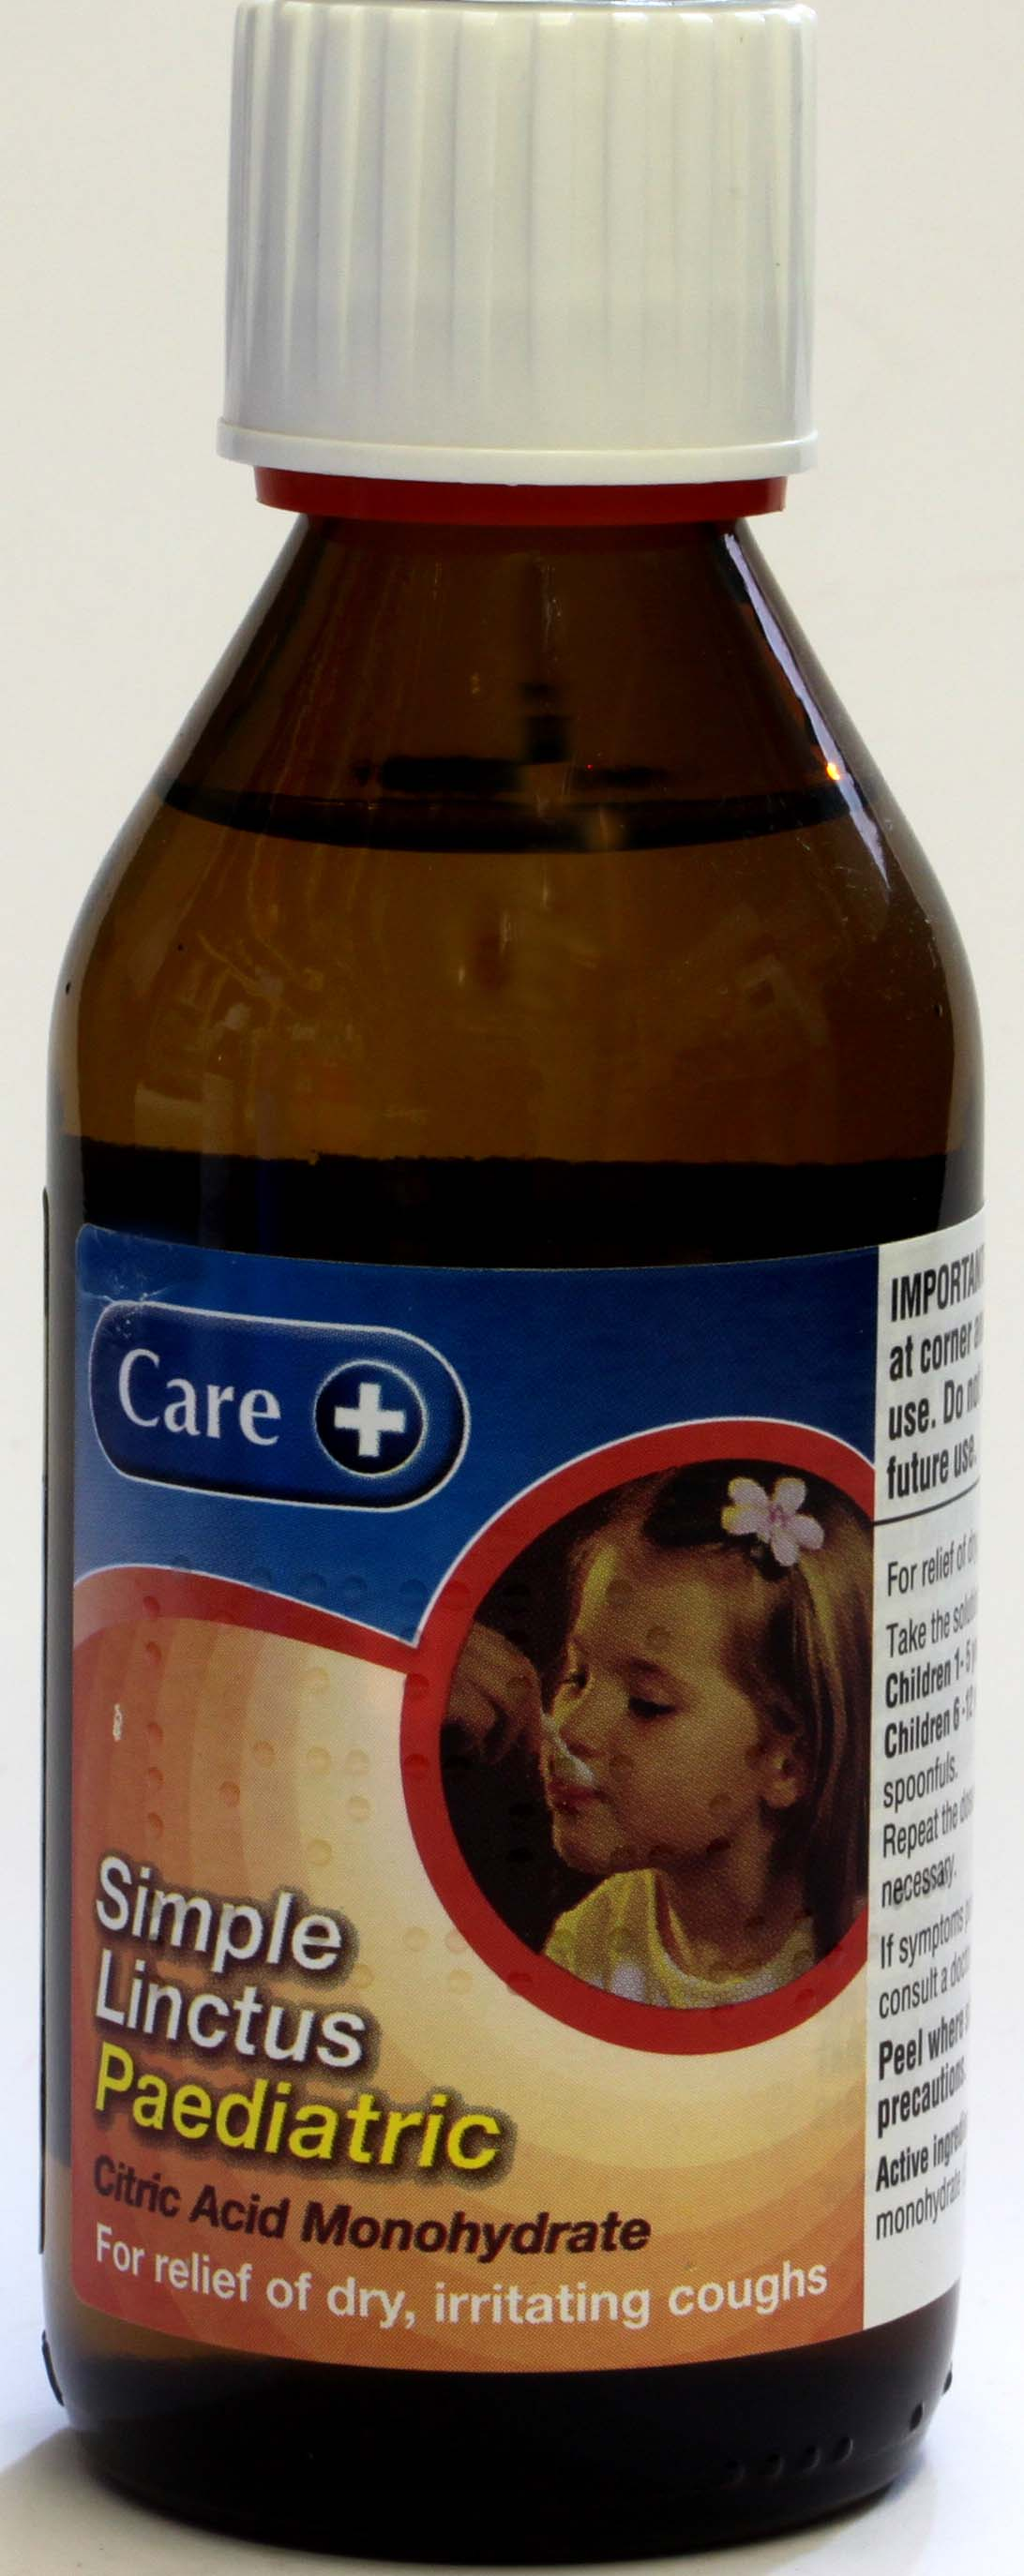 Simple Linctus Paediatric (Care) 200ml